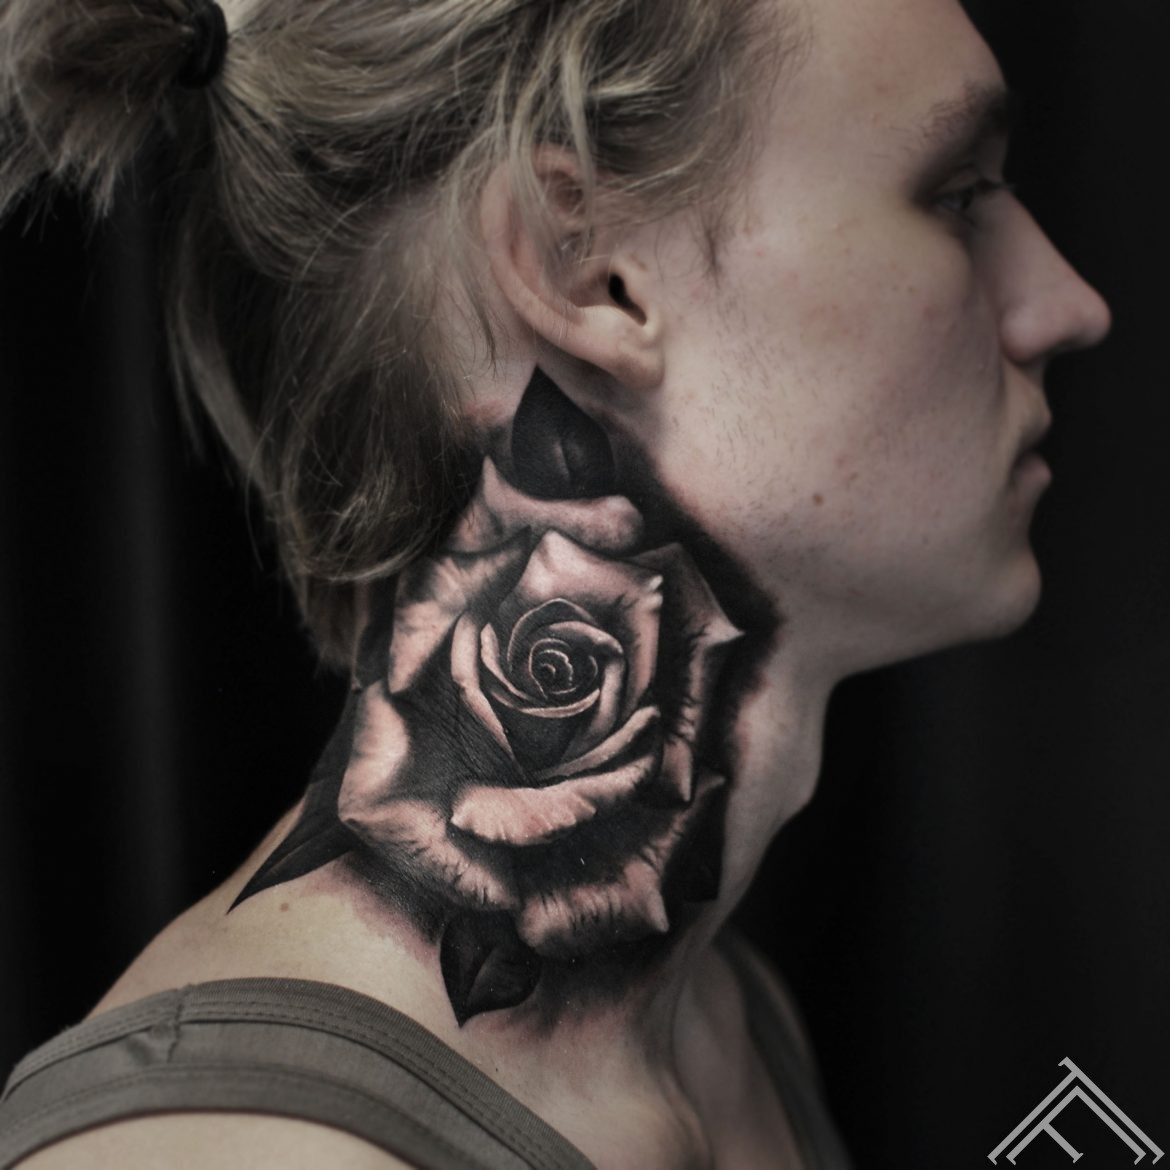 rose-roze-necktattoo-kakls-flower-zieds-tattoofreqency-riga-art-martinssilins-tattooartist-tetovejums-danielslaizans